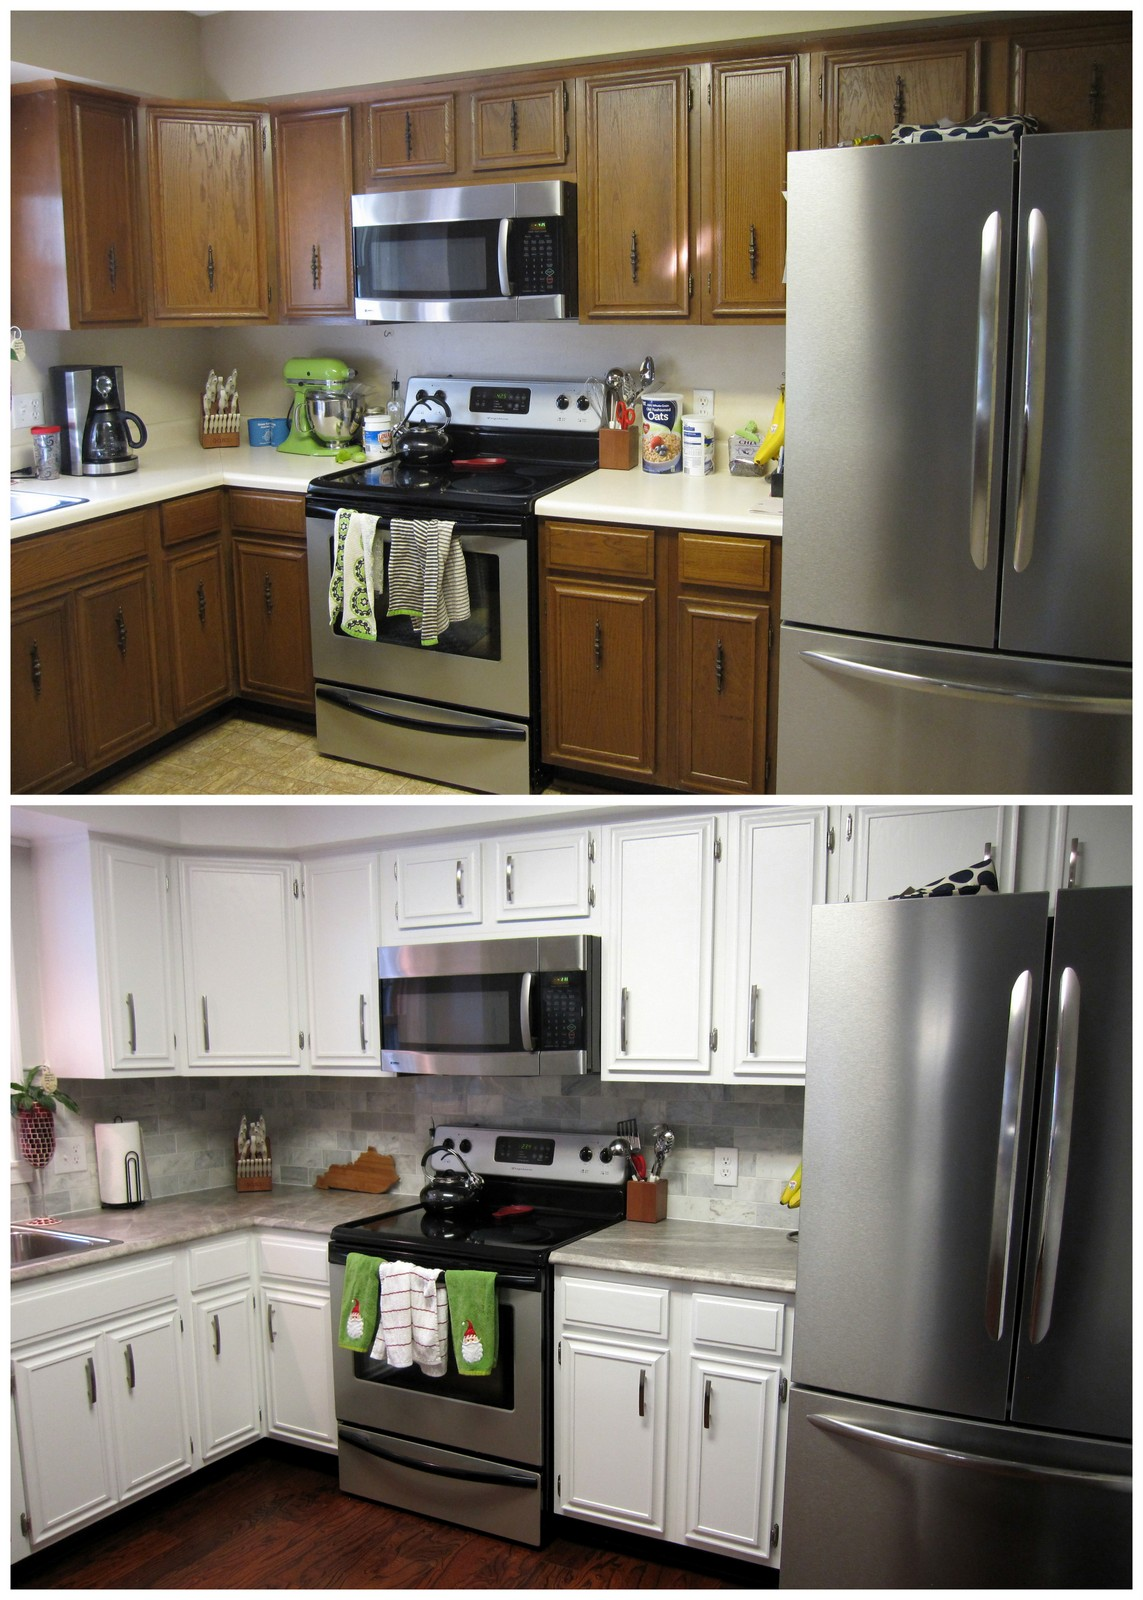 How To Paint Kitchen Cabinets With A Roller Remodelaholic Diy Refinished And Painted Cabinet Reviews